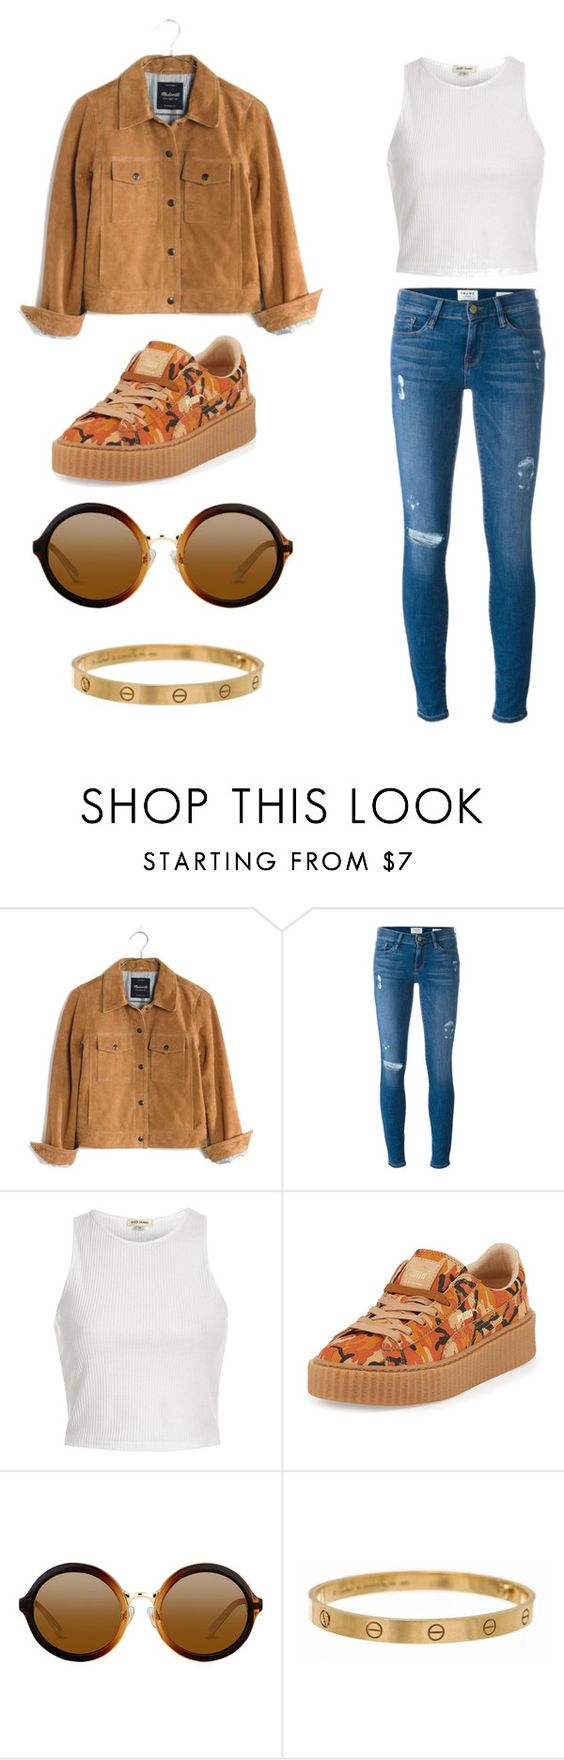 """Untitled #401"" by xsherinx ❤ liked on Polyvore featuring Madewell, Frame Denim, River Island, Puma and Cartier"